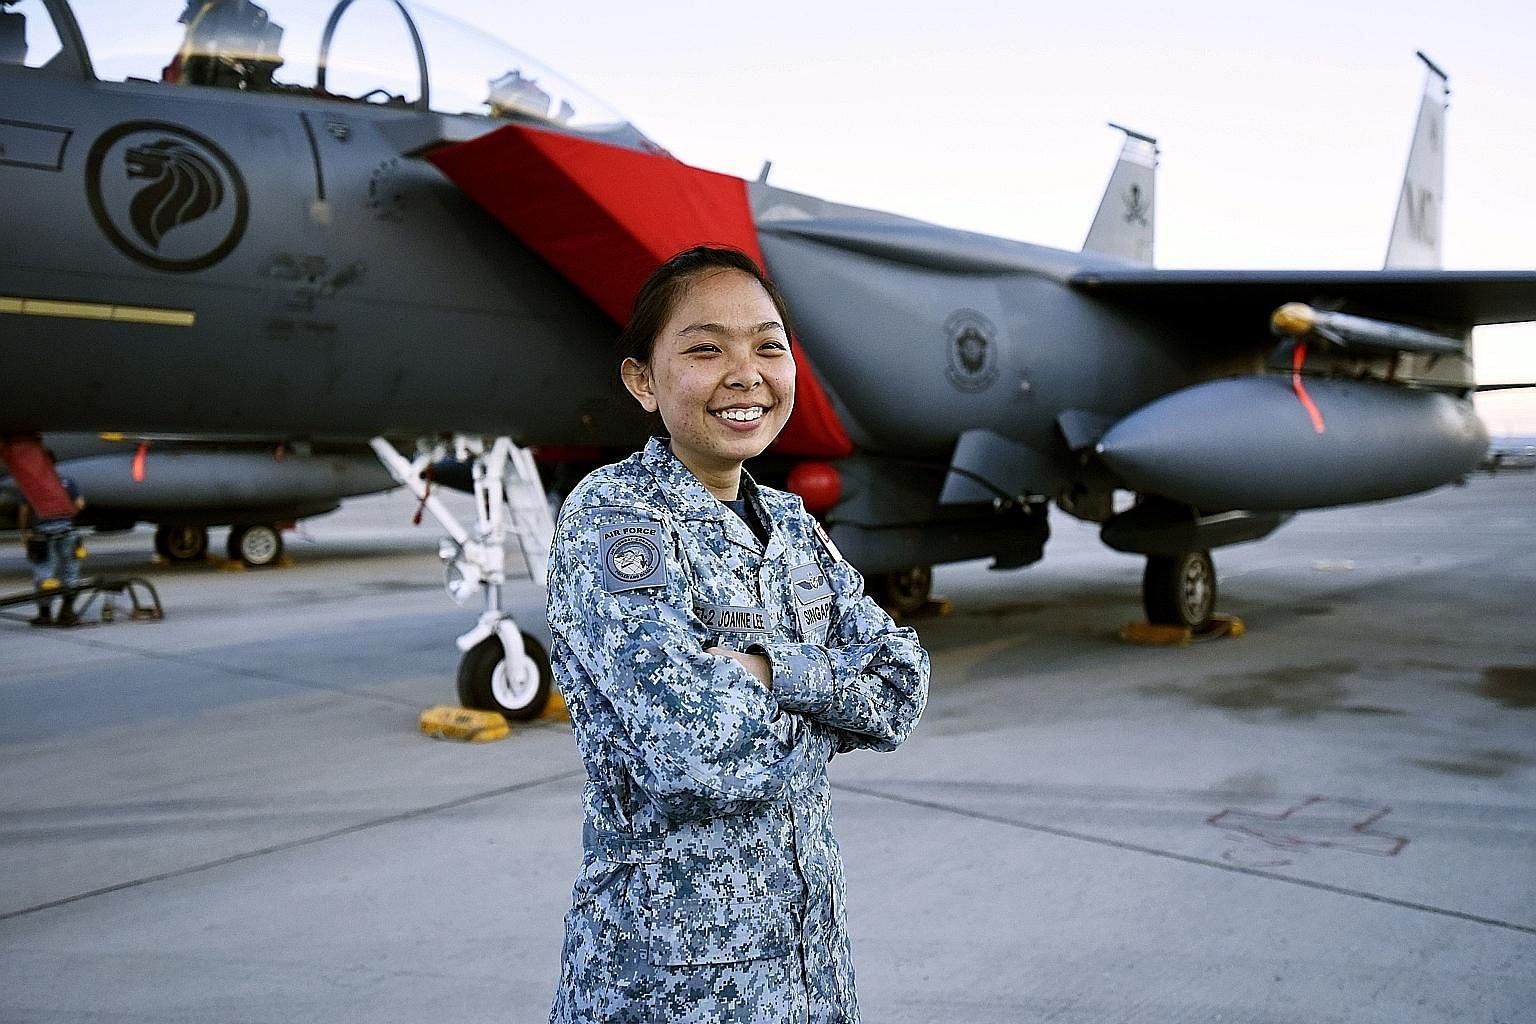 As a Republic of Singapore Air Force engineer, Military Expert 1 Joanne Lee's role was to ensure the air force's six F-15SG fighter jets were mission-ready, whatever the environment, for this year's Exercise Red Flag-Nellis in the United States.